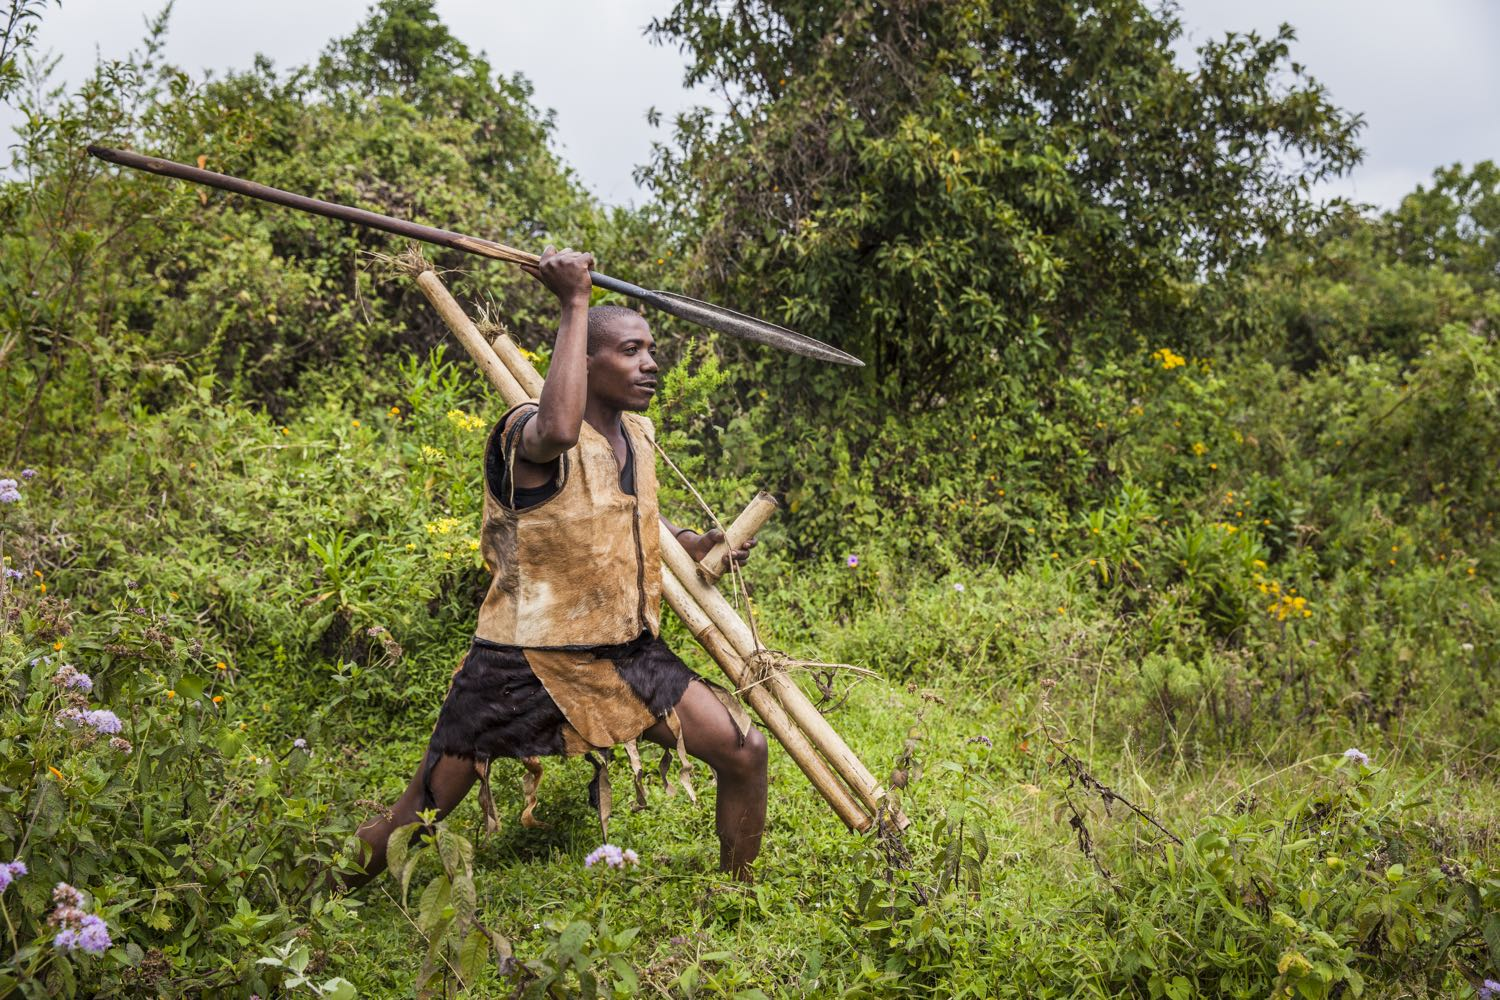 Recreation of Batwa history during the Batwa Trail in Mgahinga Gorilla National Park; photo by Marcus Westberg